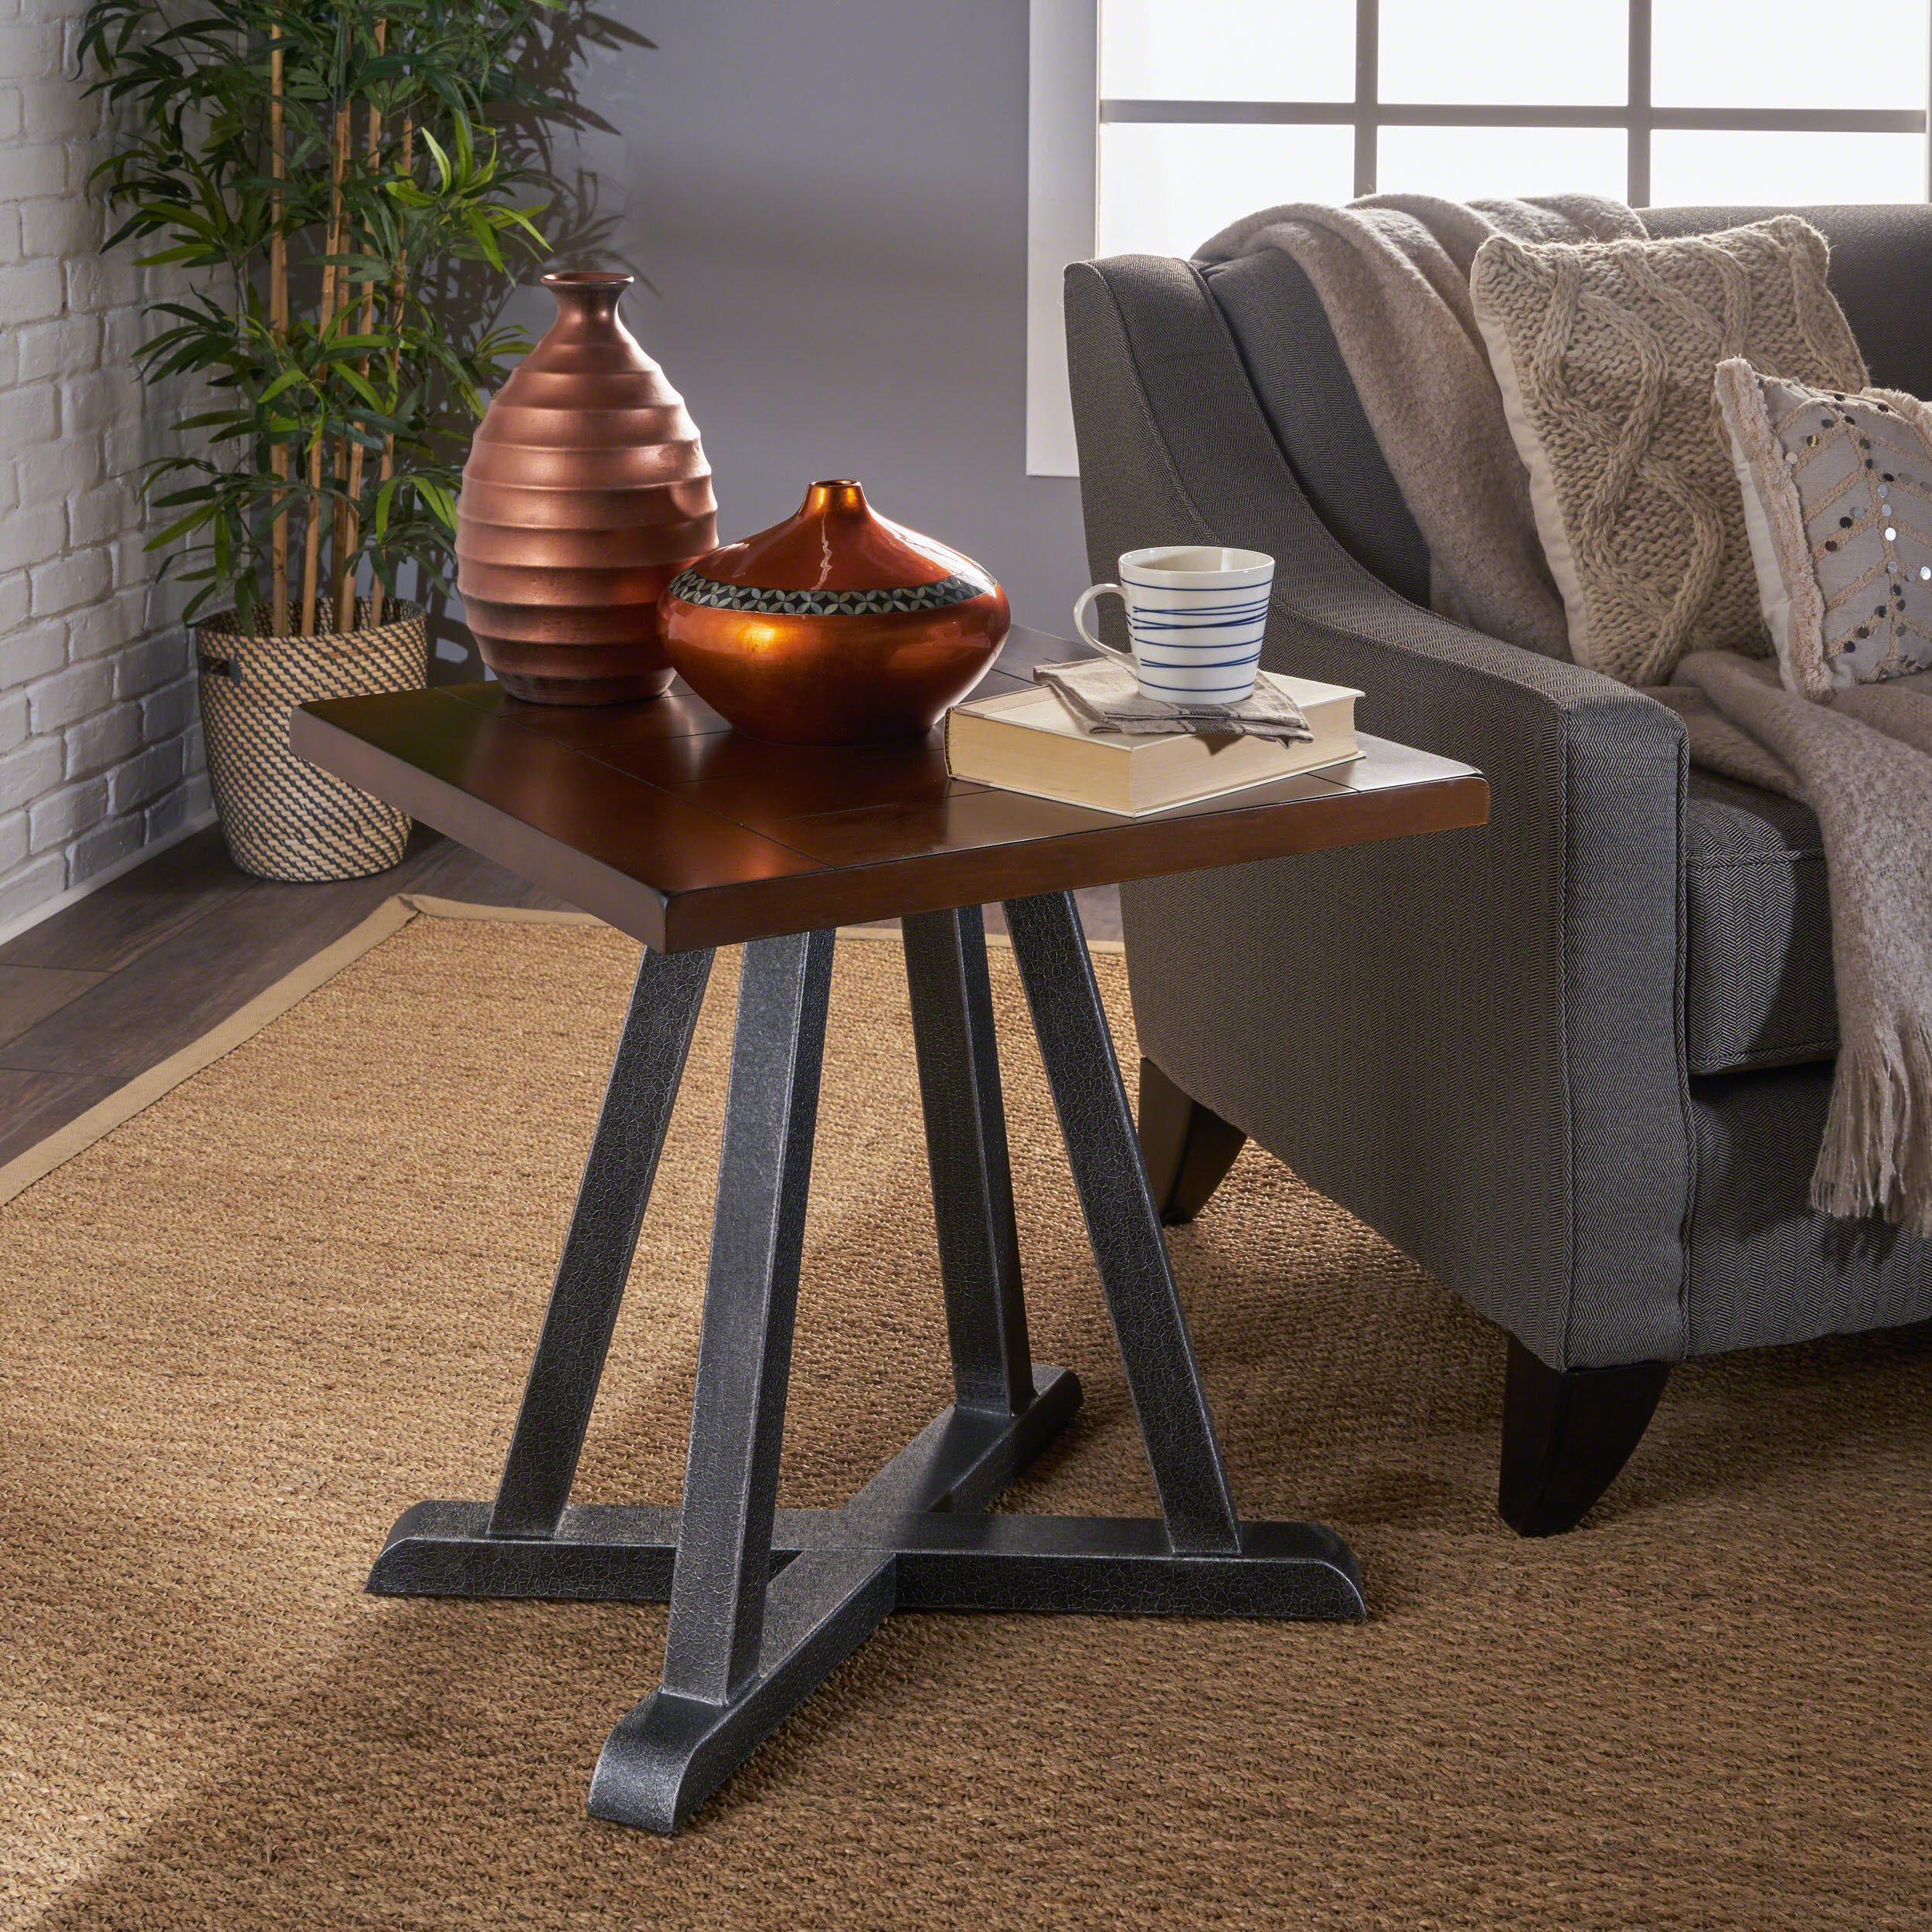 Noble House Brandon Industrial Faux Wood Overlay End Table With Iron Frame, Dark Brown, Antique Black